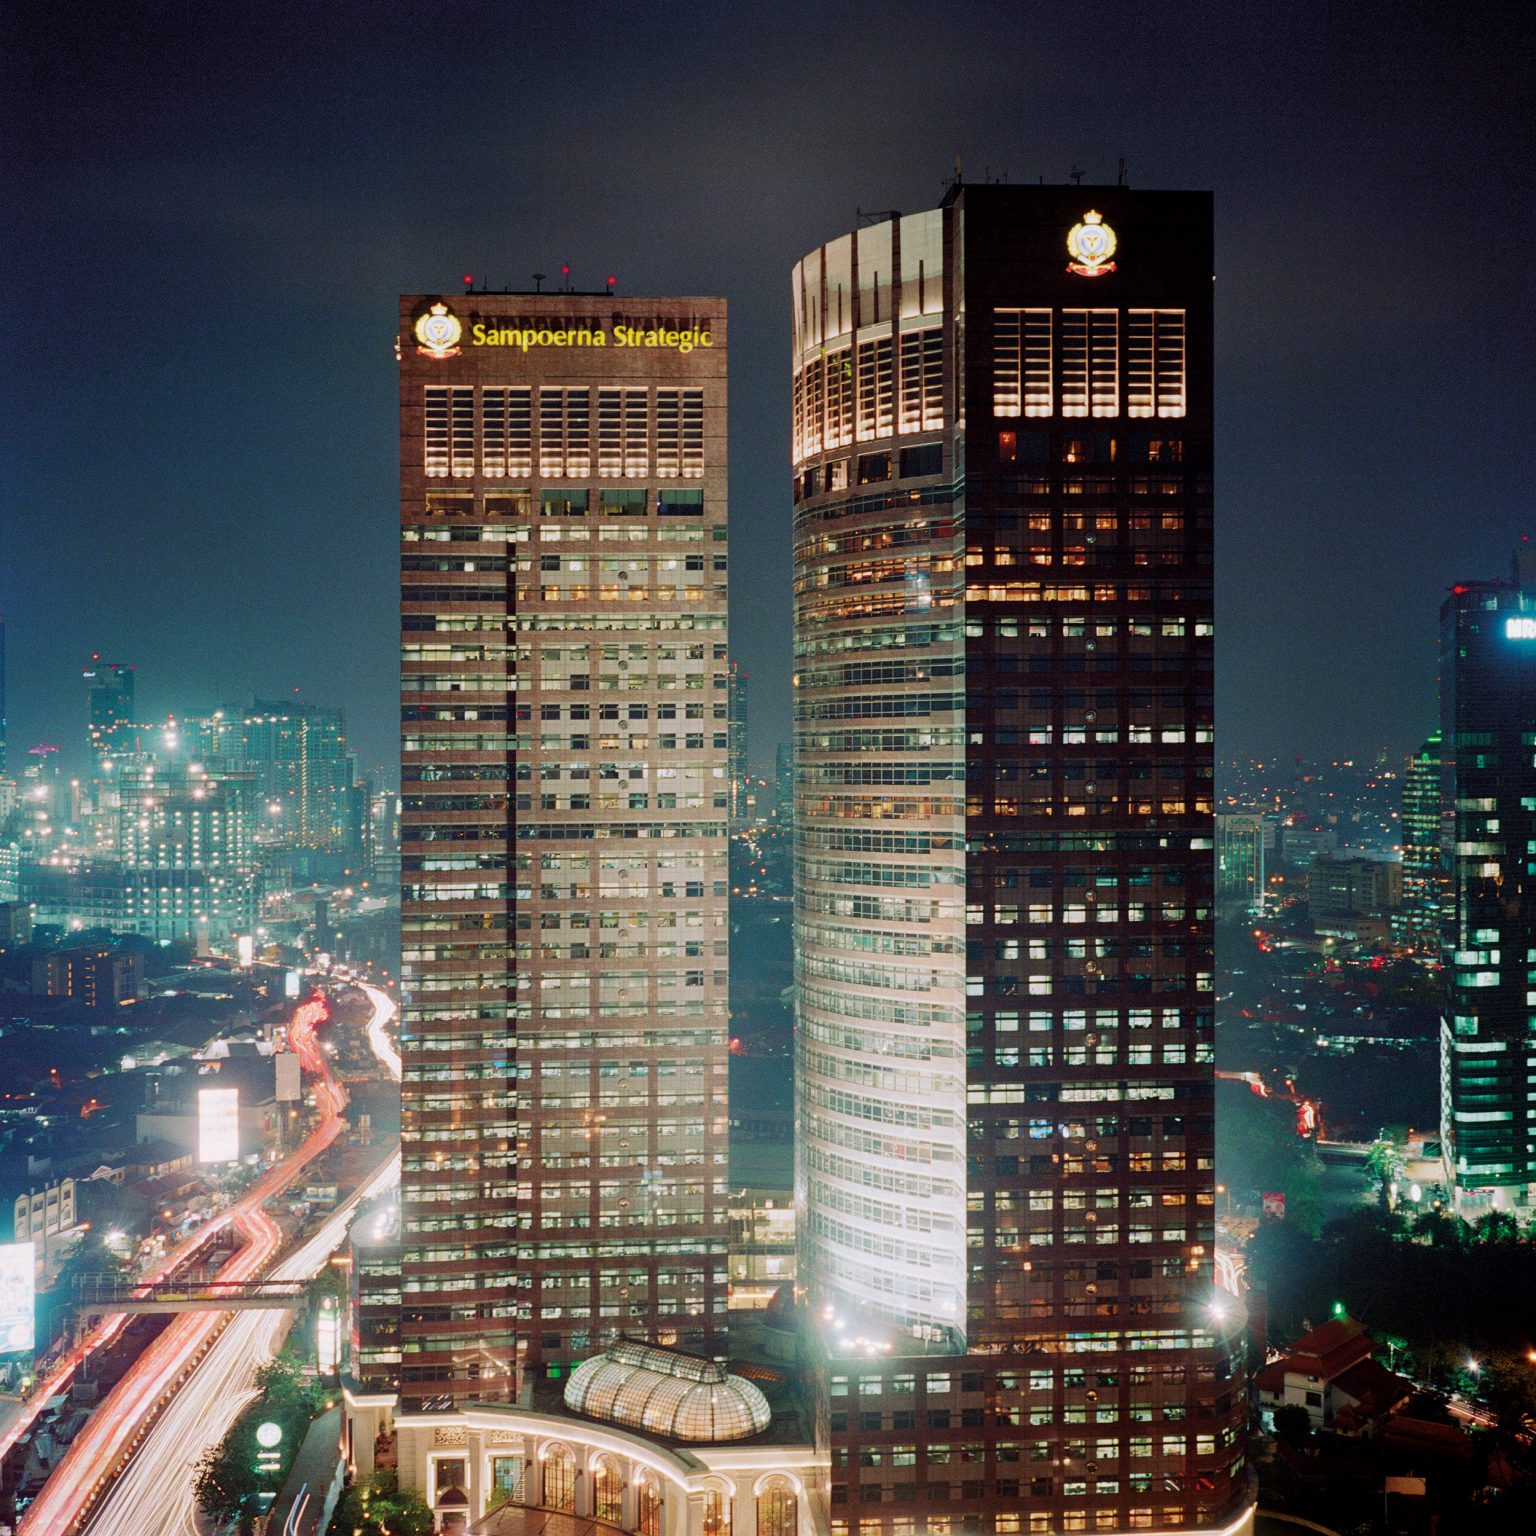 Jakarta, Indonesia. The Sampoerna Strategic Square, built by billionaire Putera Sampoerna, owner of the largest tobacco company of Indonesia, and housing several business offices, among which the Sampoerna Foundation, the only element of the company retained by the family after the sale of the company to Philip Morris International in 2005.